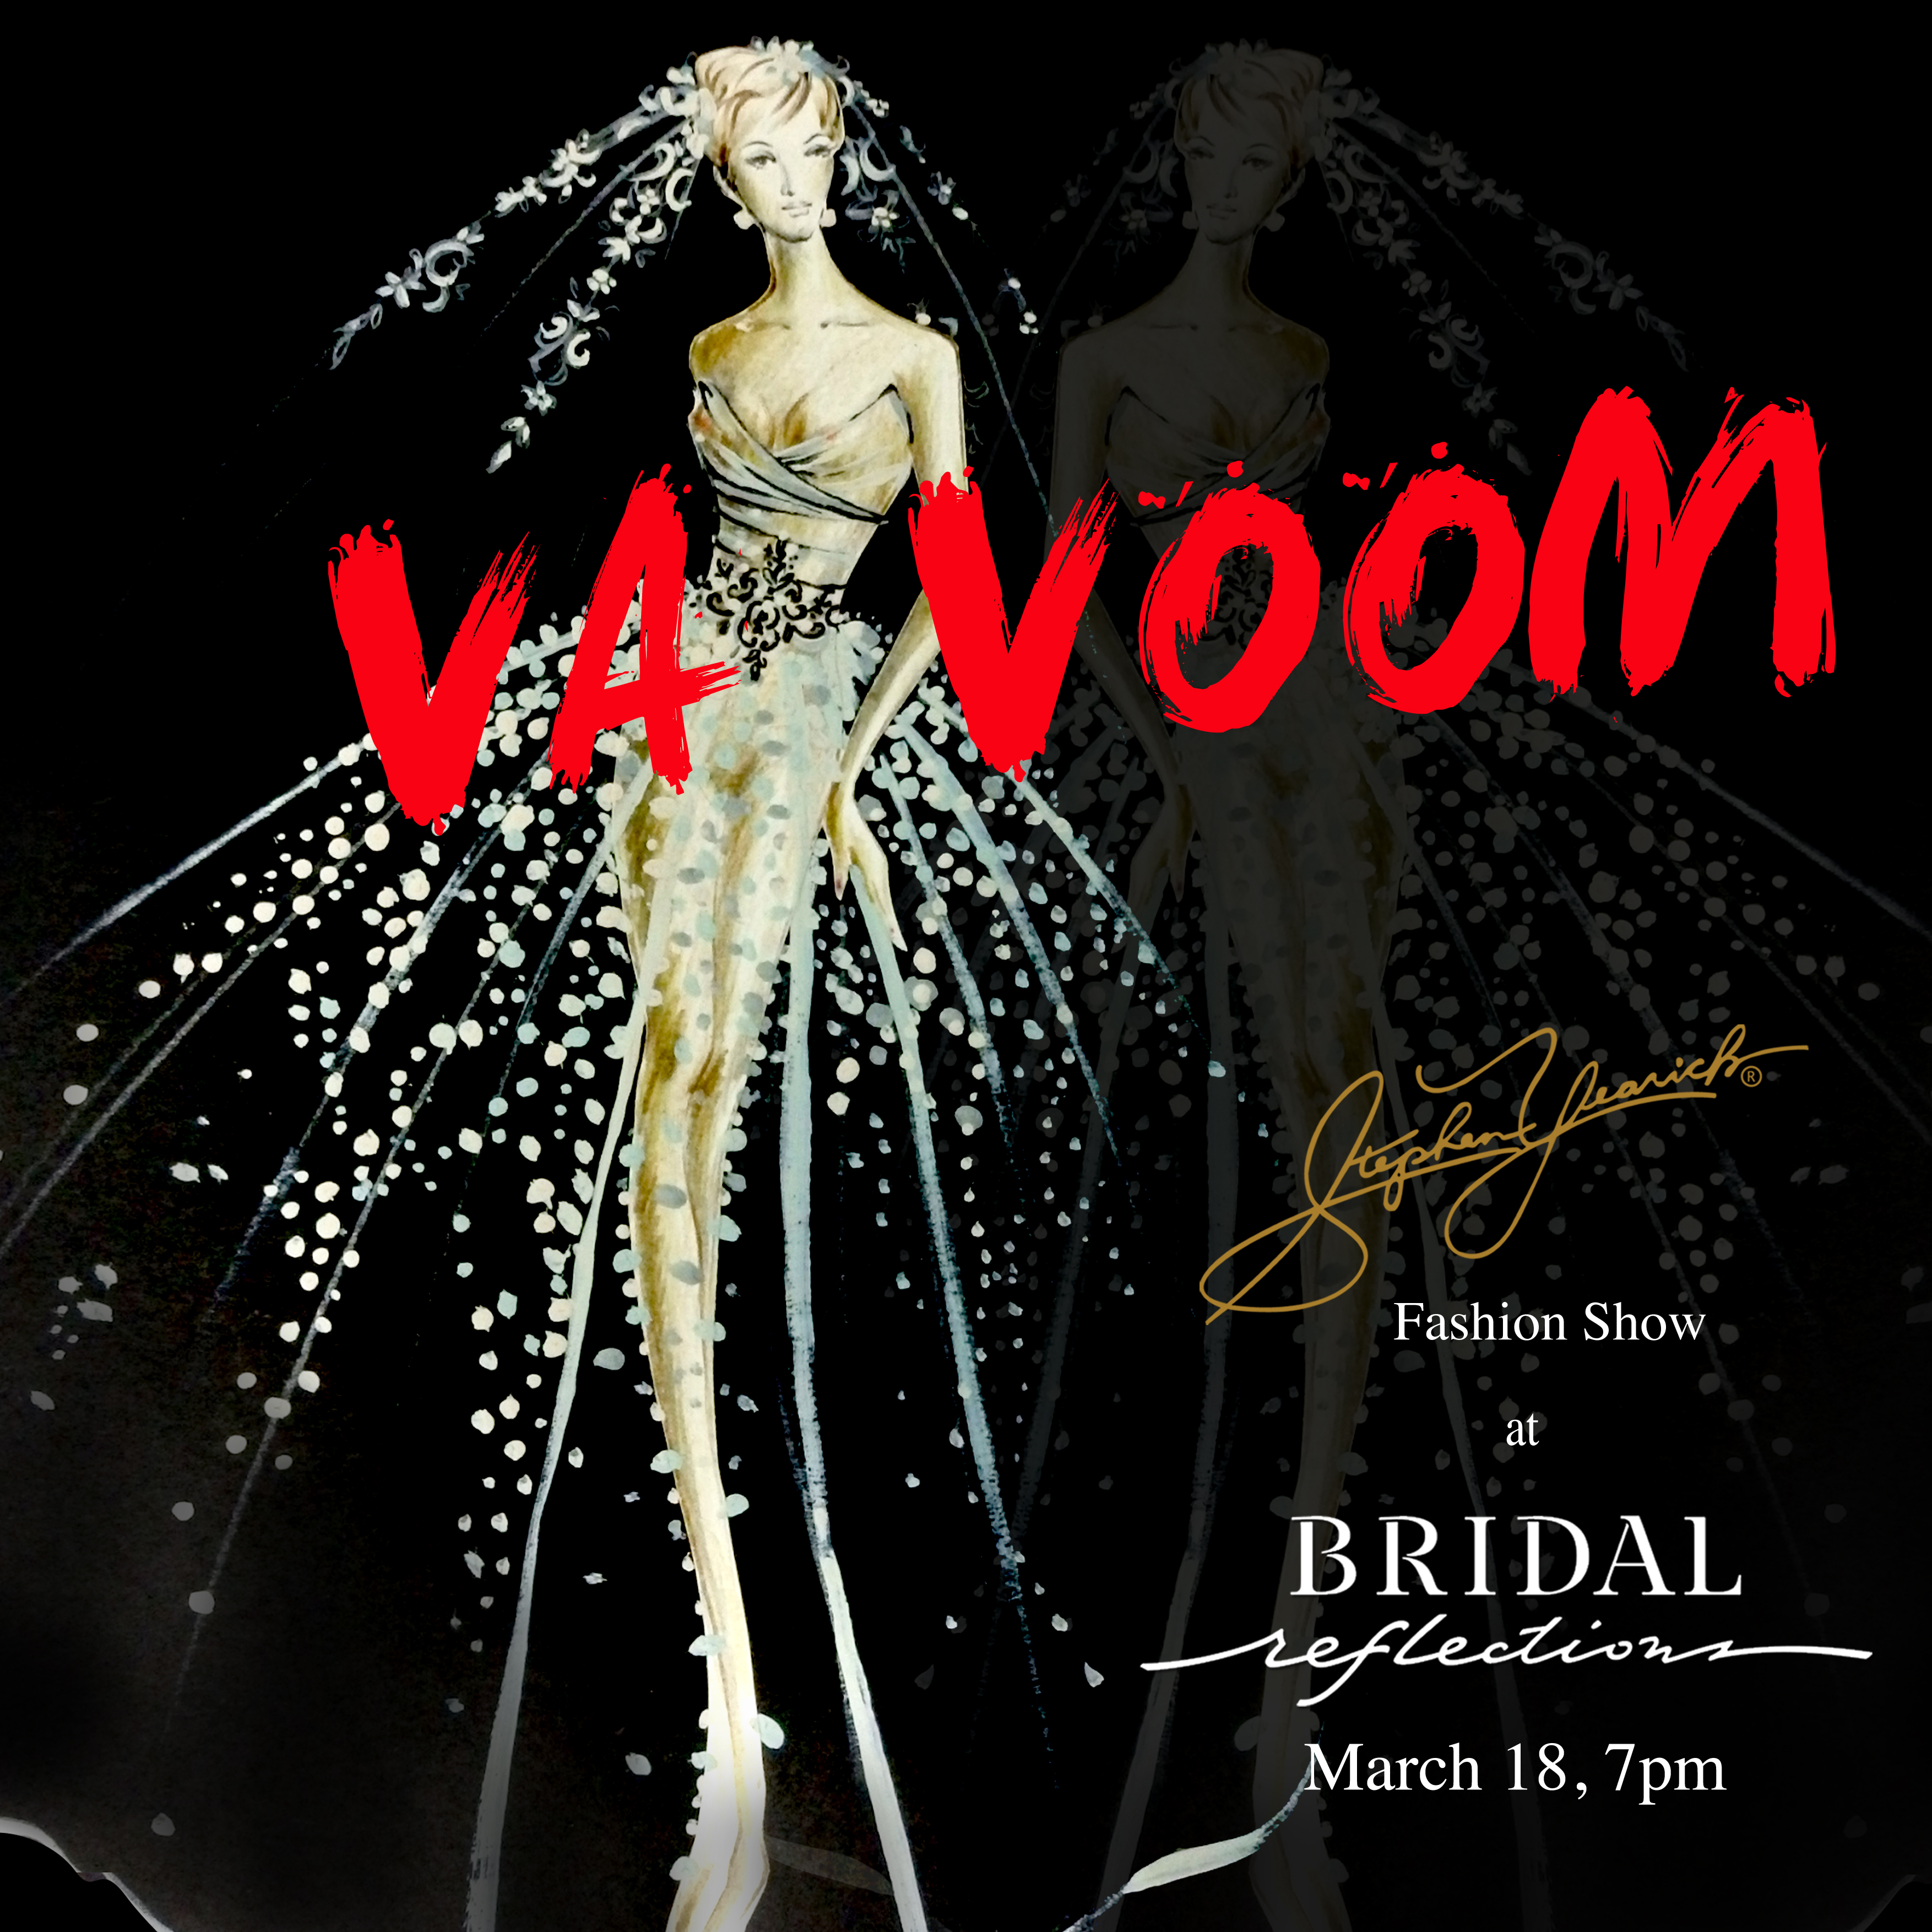 Fashion Show at Bridal Reflection